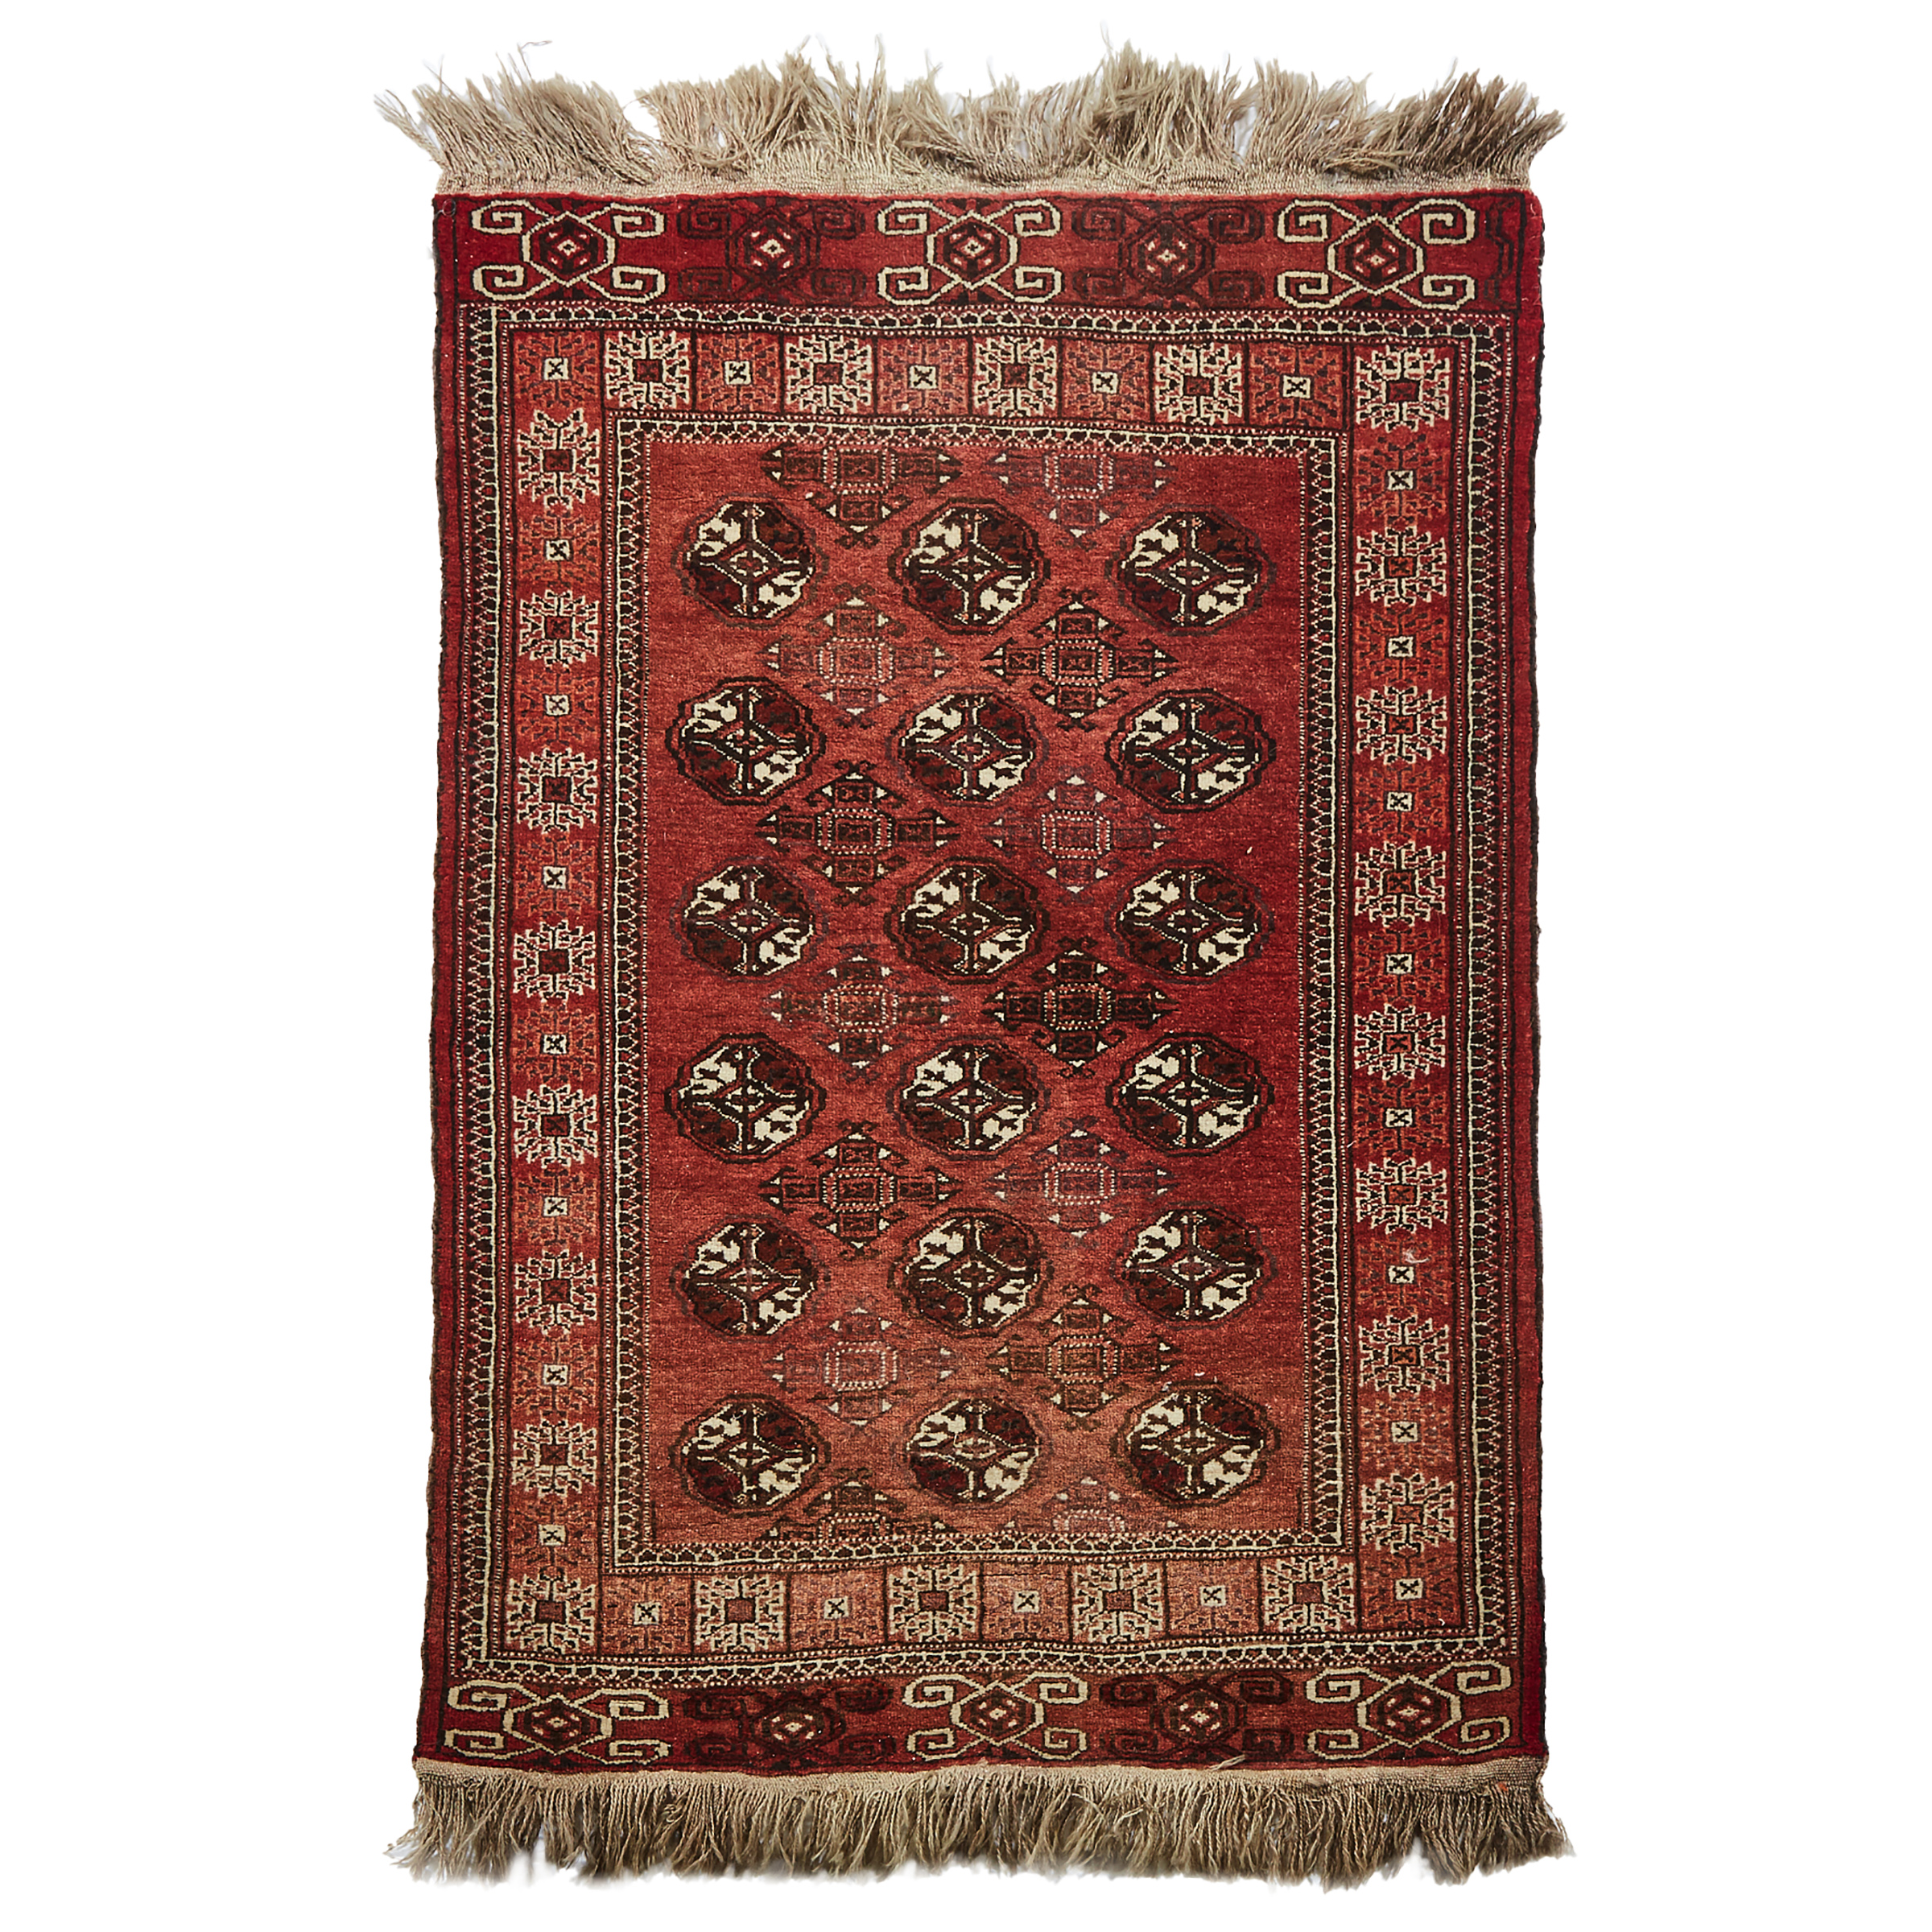 Turkoman Rug, Central Asia,  mid 20th century